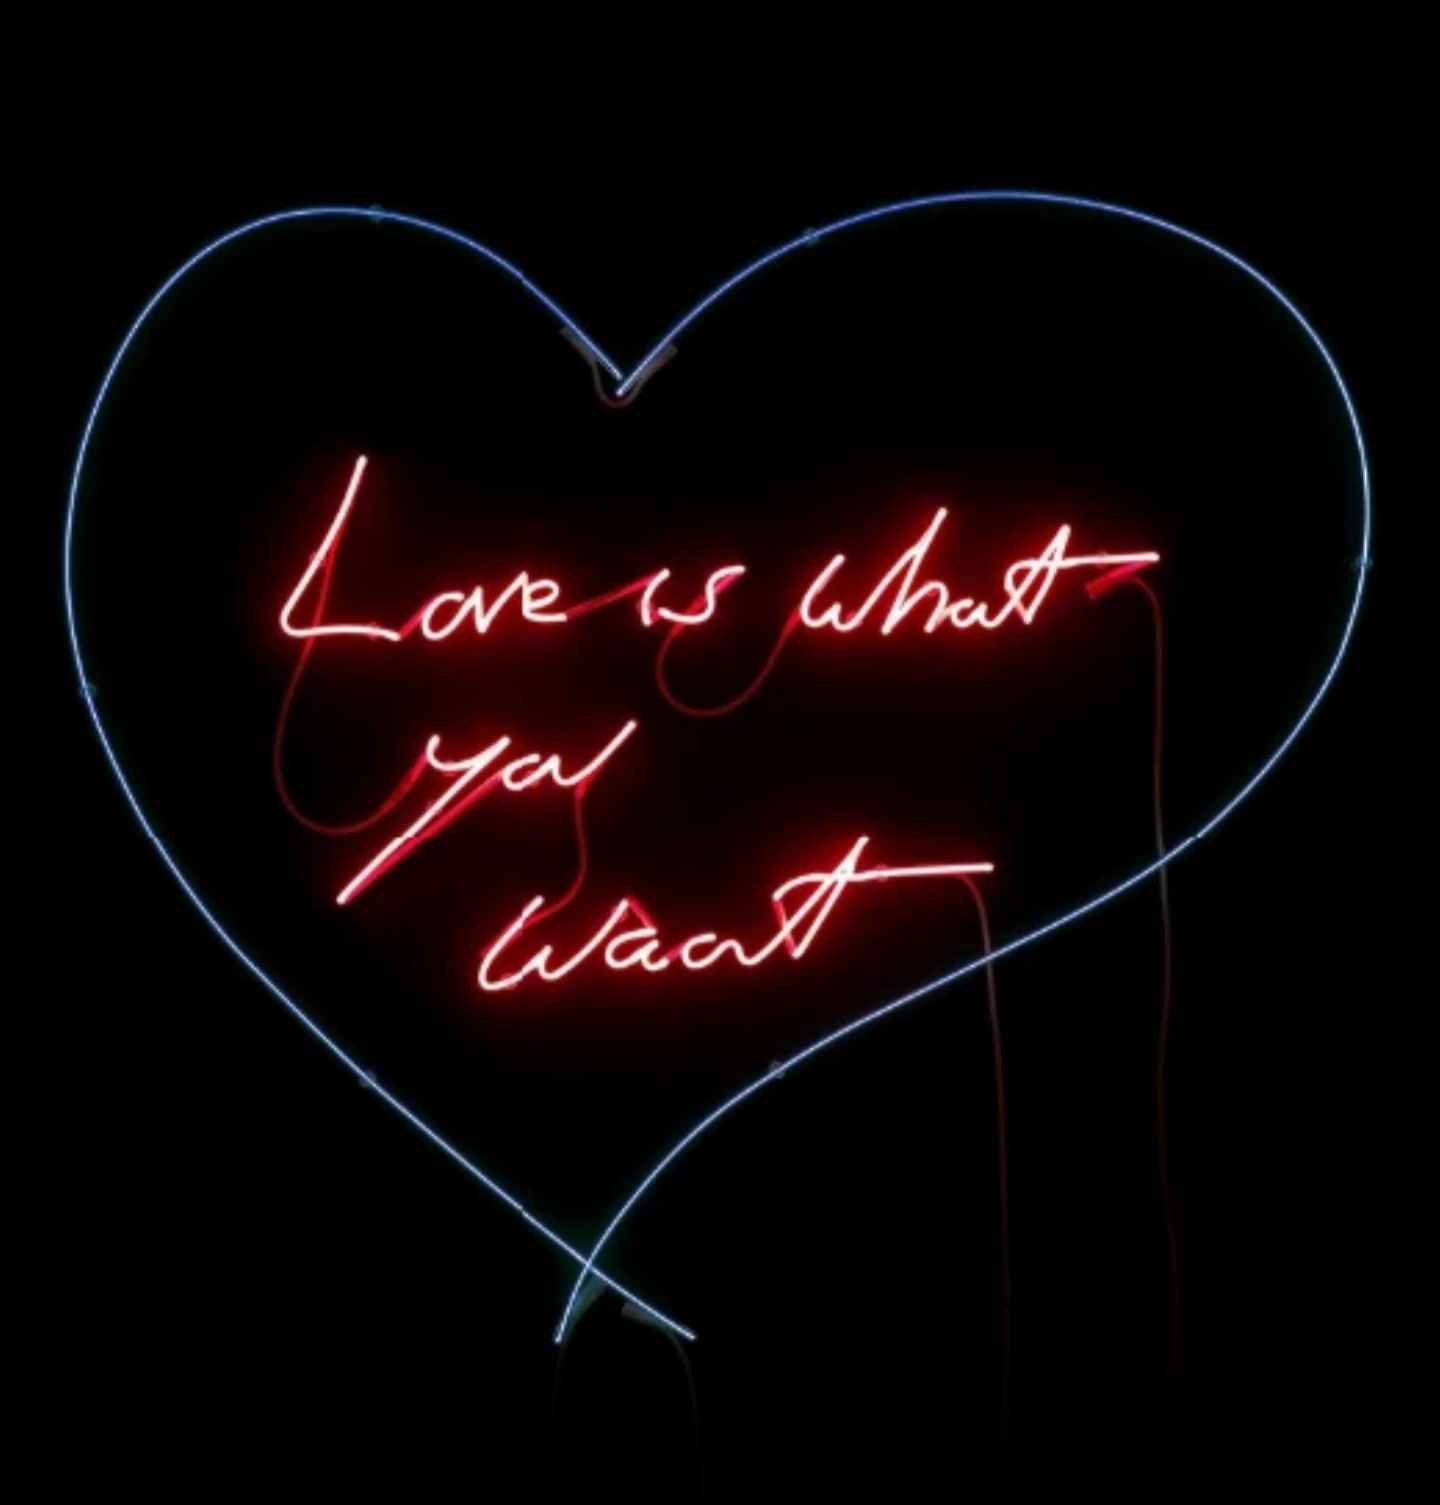 Love is what you want, Tracey Emin